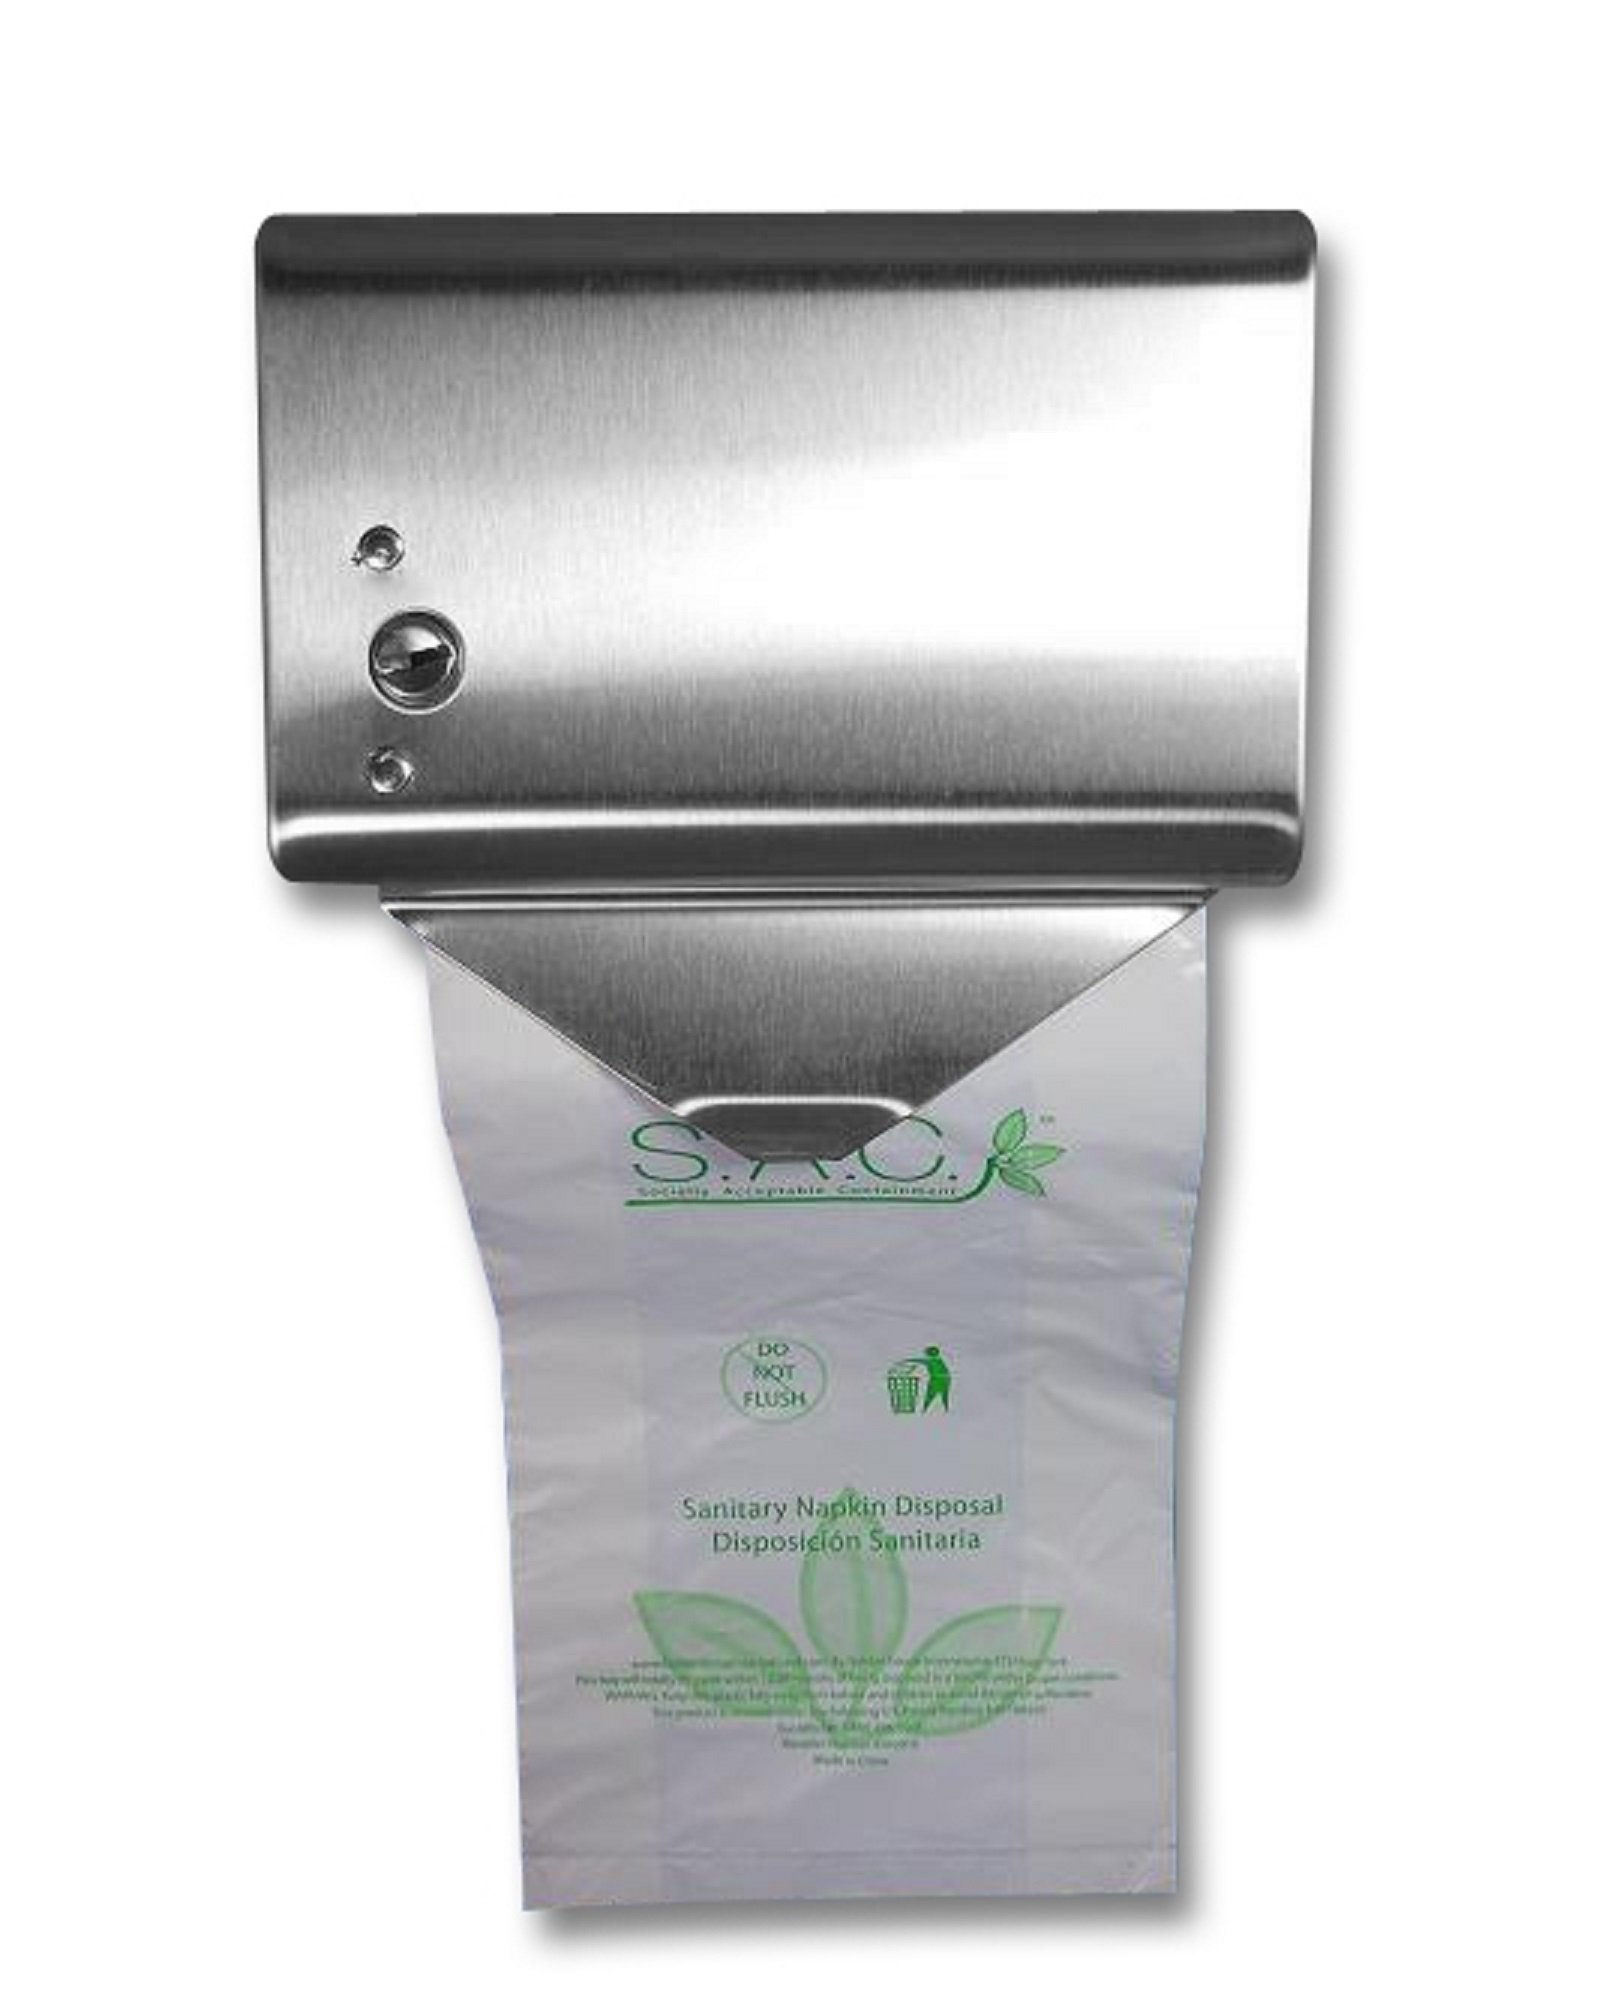 S.A.C SD2010R 22 Gauge Steel Sanitary Napkin Disposal Bag Roll Dispenser, 5-1/4'' Length x 5-1/8'' Width x 3-1/2'' Height, Stainless Steel by S.A.C (Image #1)